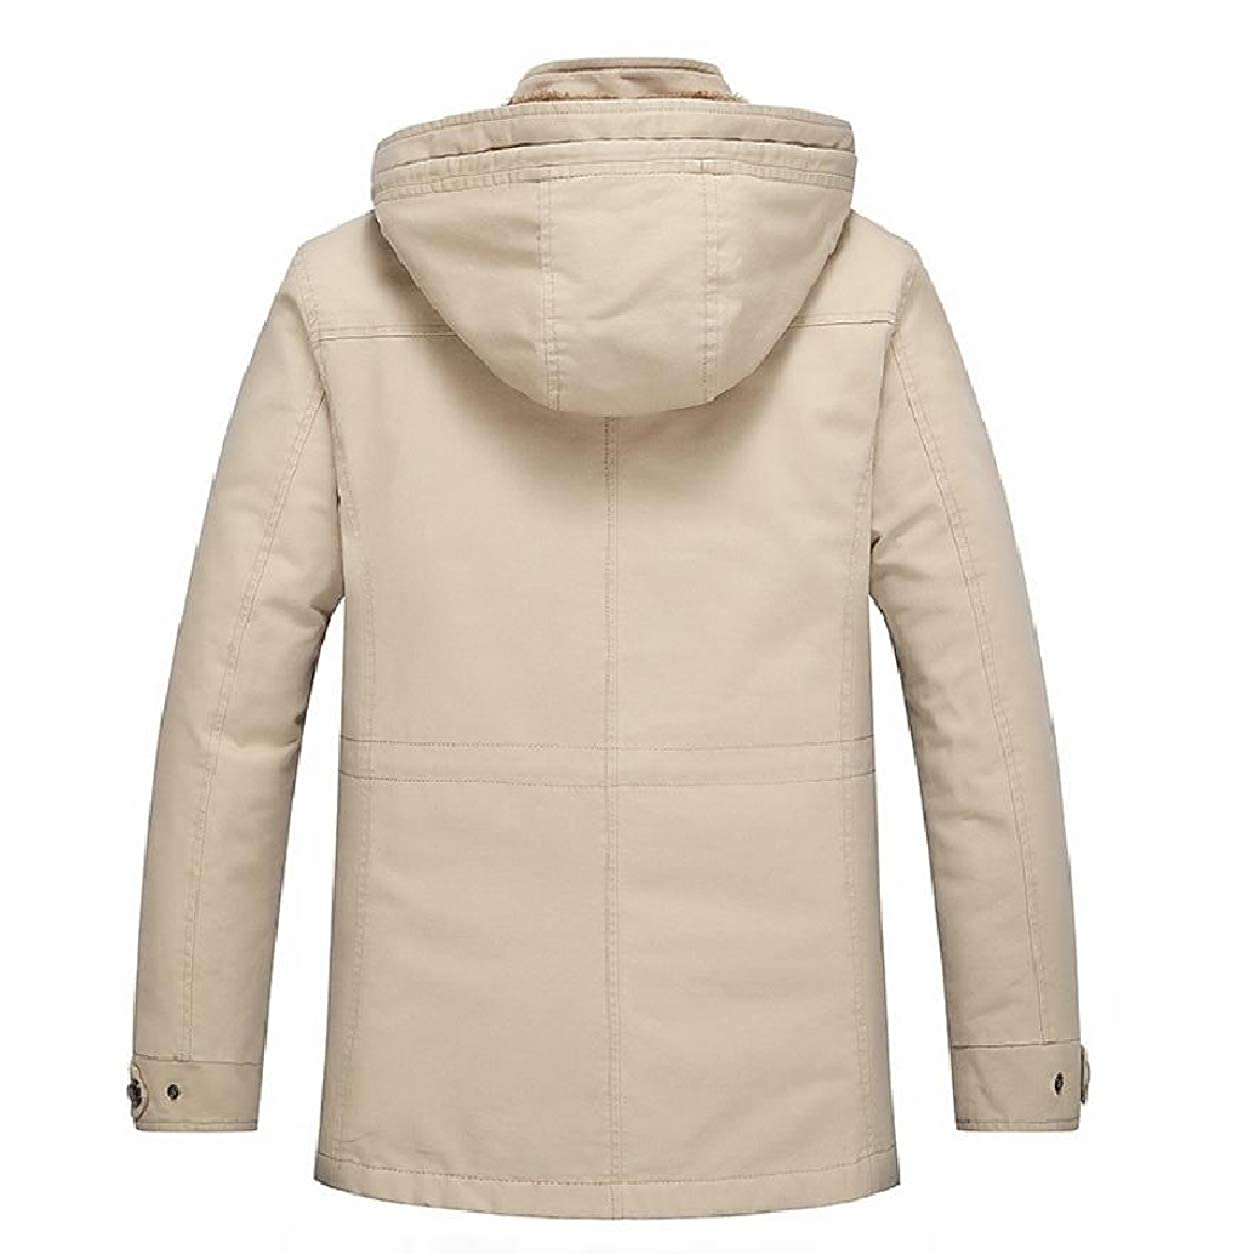 SportsX Mens Cotton Removable Hood Hoodie Winter Down Jackets and Coats